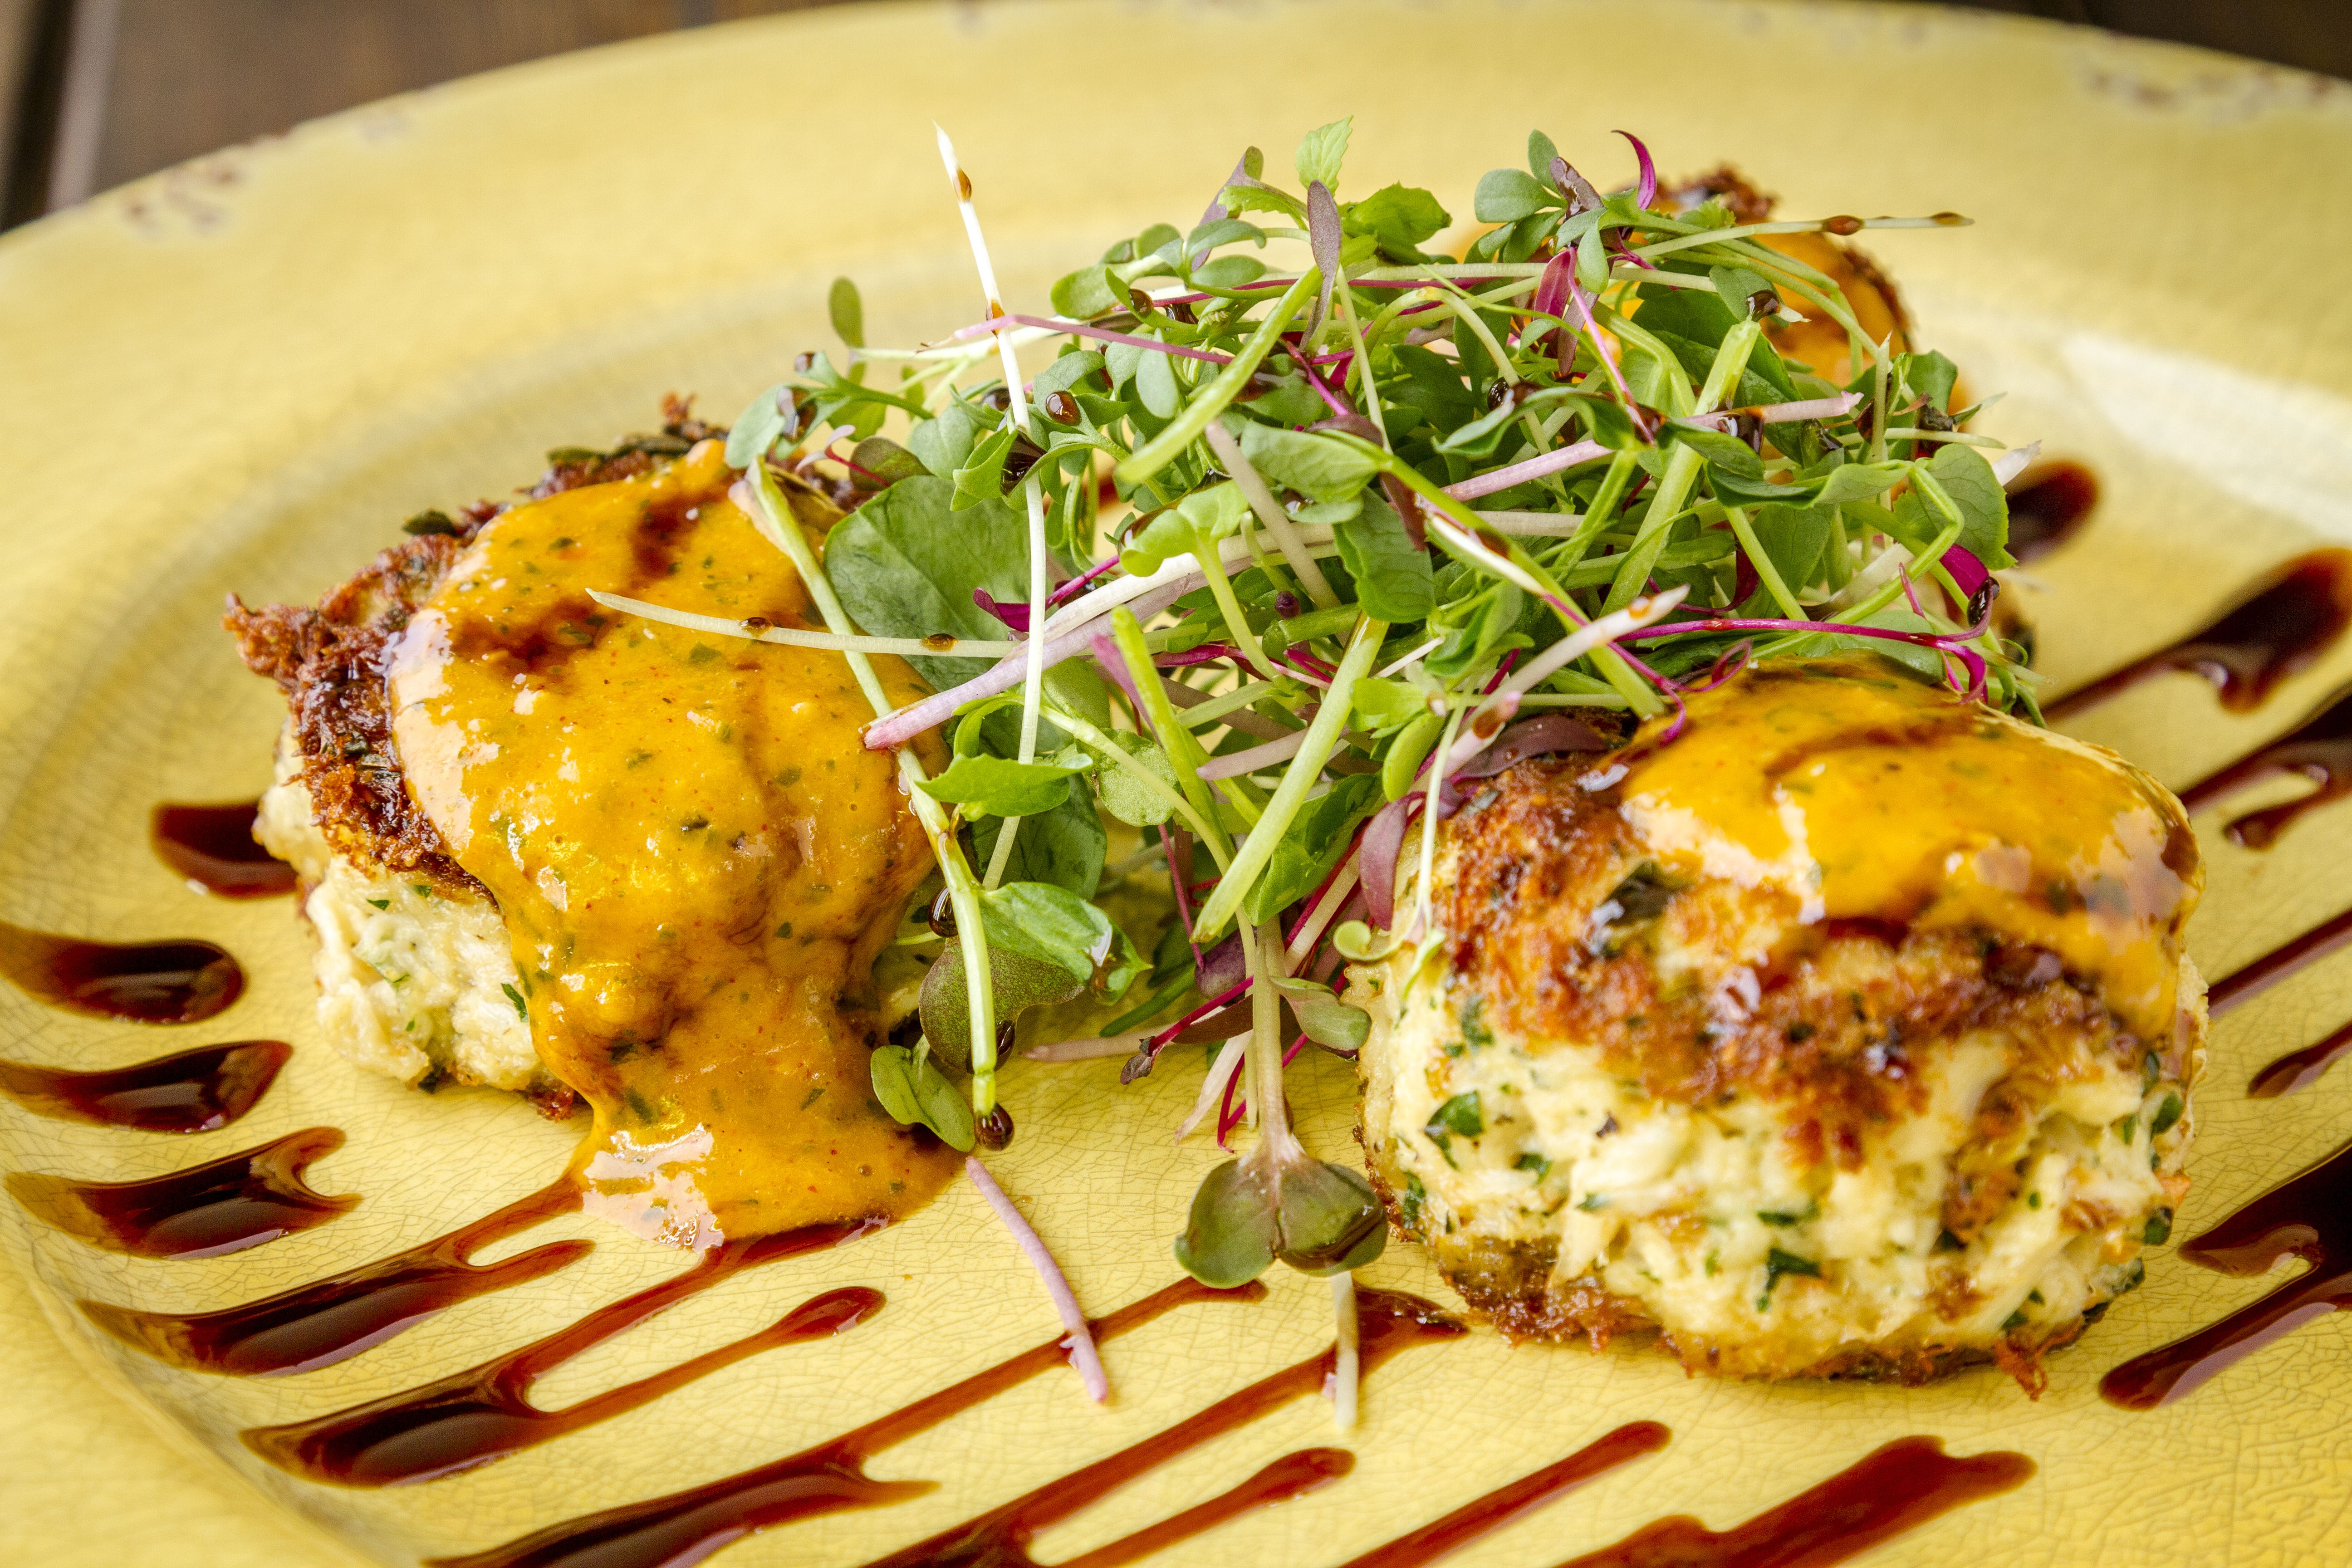 Blue Crab Cakes with Balsamic Glaze and A&S Microgreens. So, so good! #asmicrogreens #microgreens #nutrients  #market #petlovers #furryfriends #cats #dogs #veterinarians #petsitters #rabbits #turtles #hamsters #eatlocal #livefood #organicfood #freshproduce #localfood #eatfresh #healthyfood #nutrients #nutrition #cowichanvalley #victoria #nanaimo #ladysmith #millbay #cobblehill #duncan #chemainus